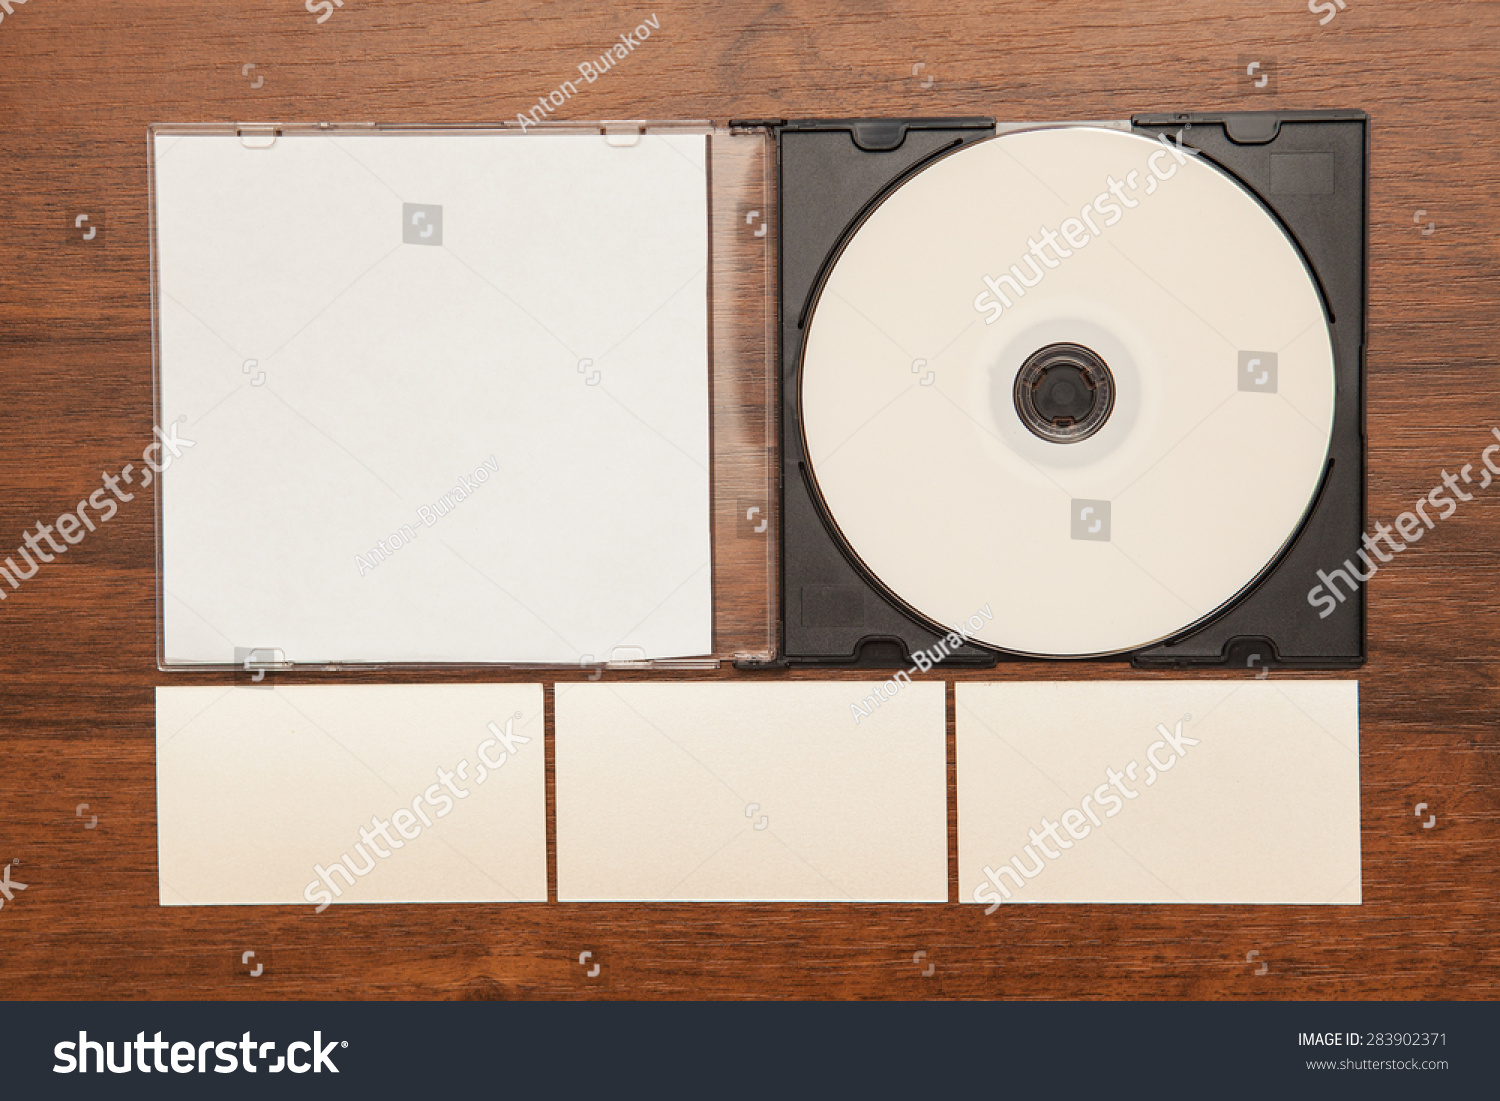 Dvd Rom Business Cards On Wooden Stock Photo 283902371 - Shutterstock